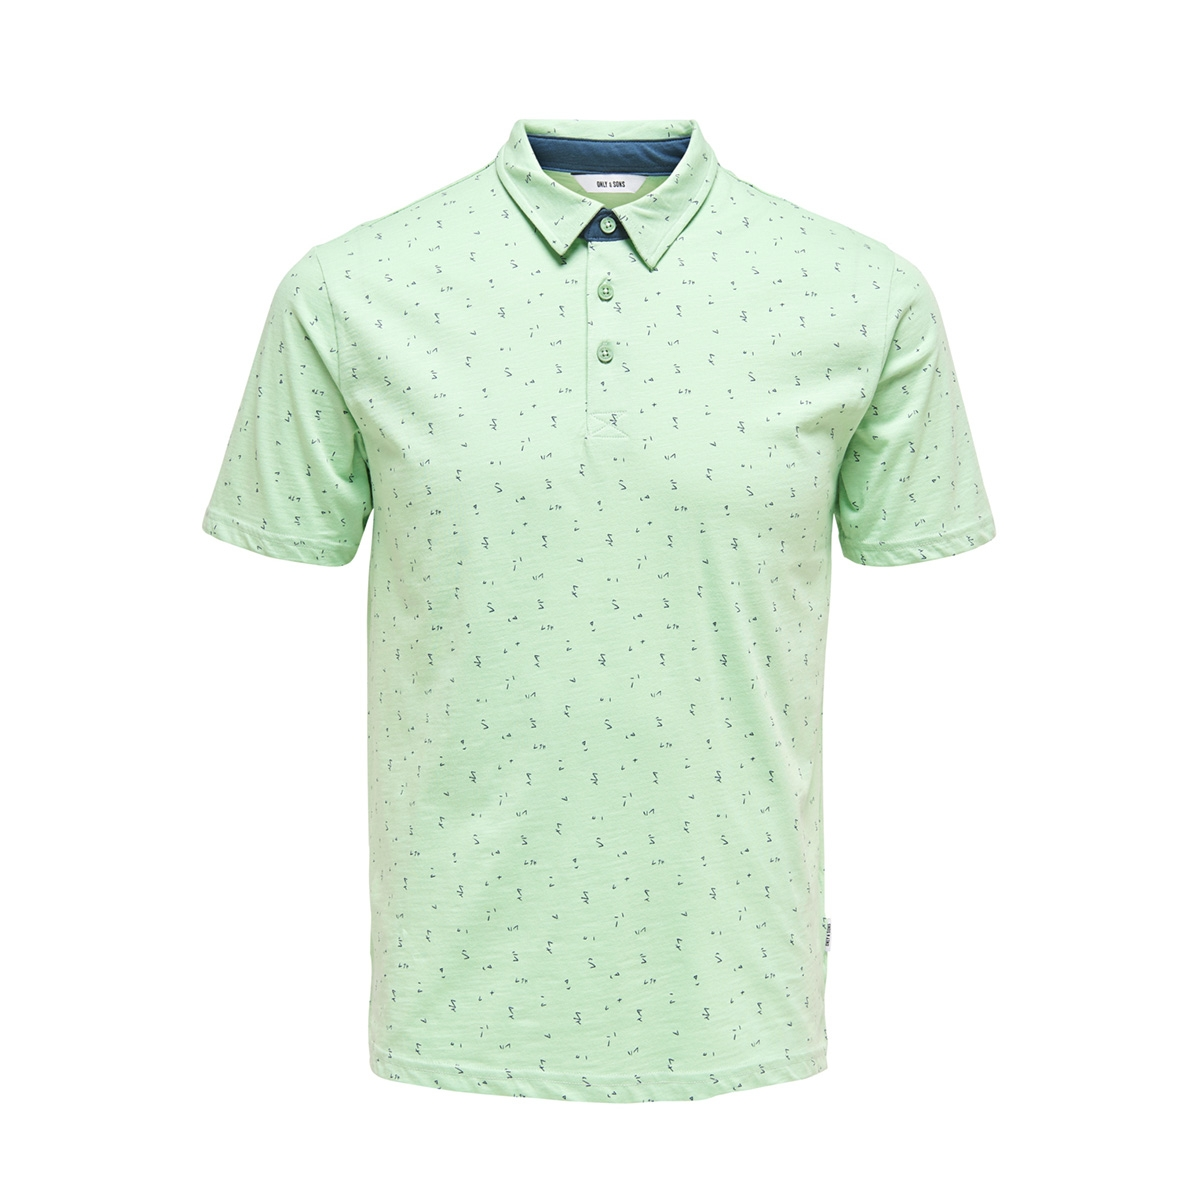 onsliam ss polo tee 22012573 only & sons polo grayed jade